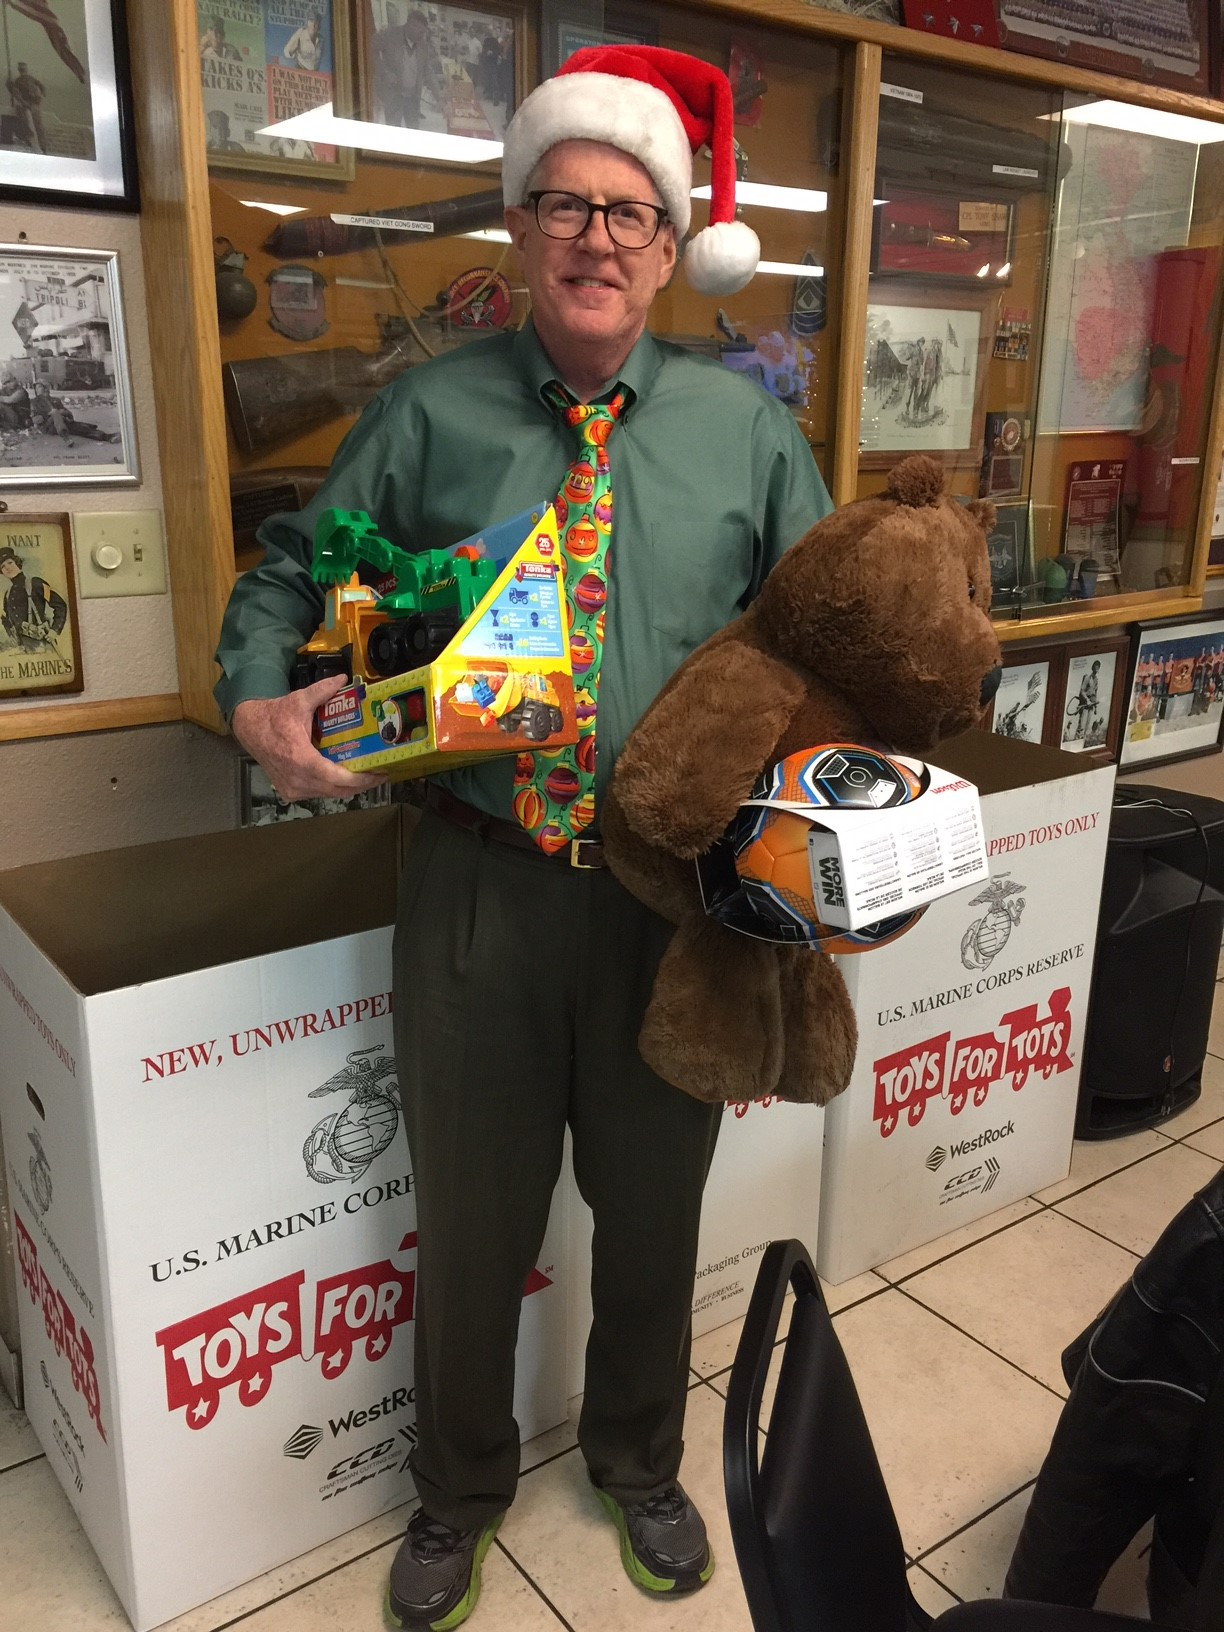 Las Vegas Toys For Tots : Las vegas cpcu society chapter christmas party toys